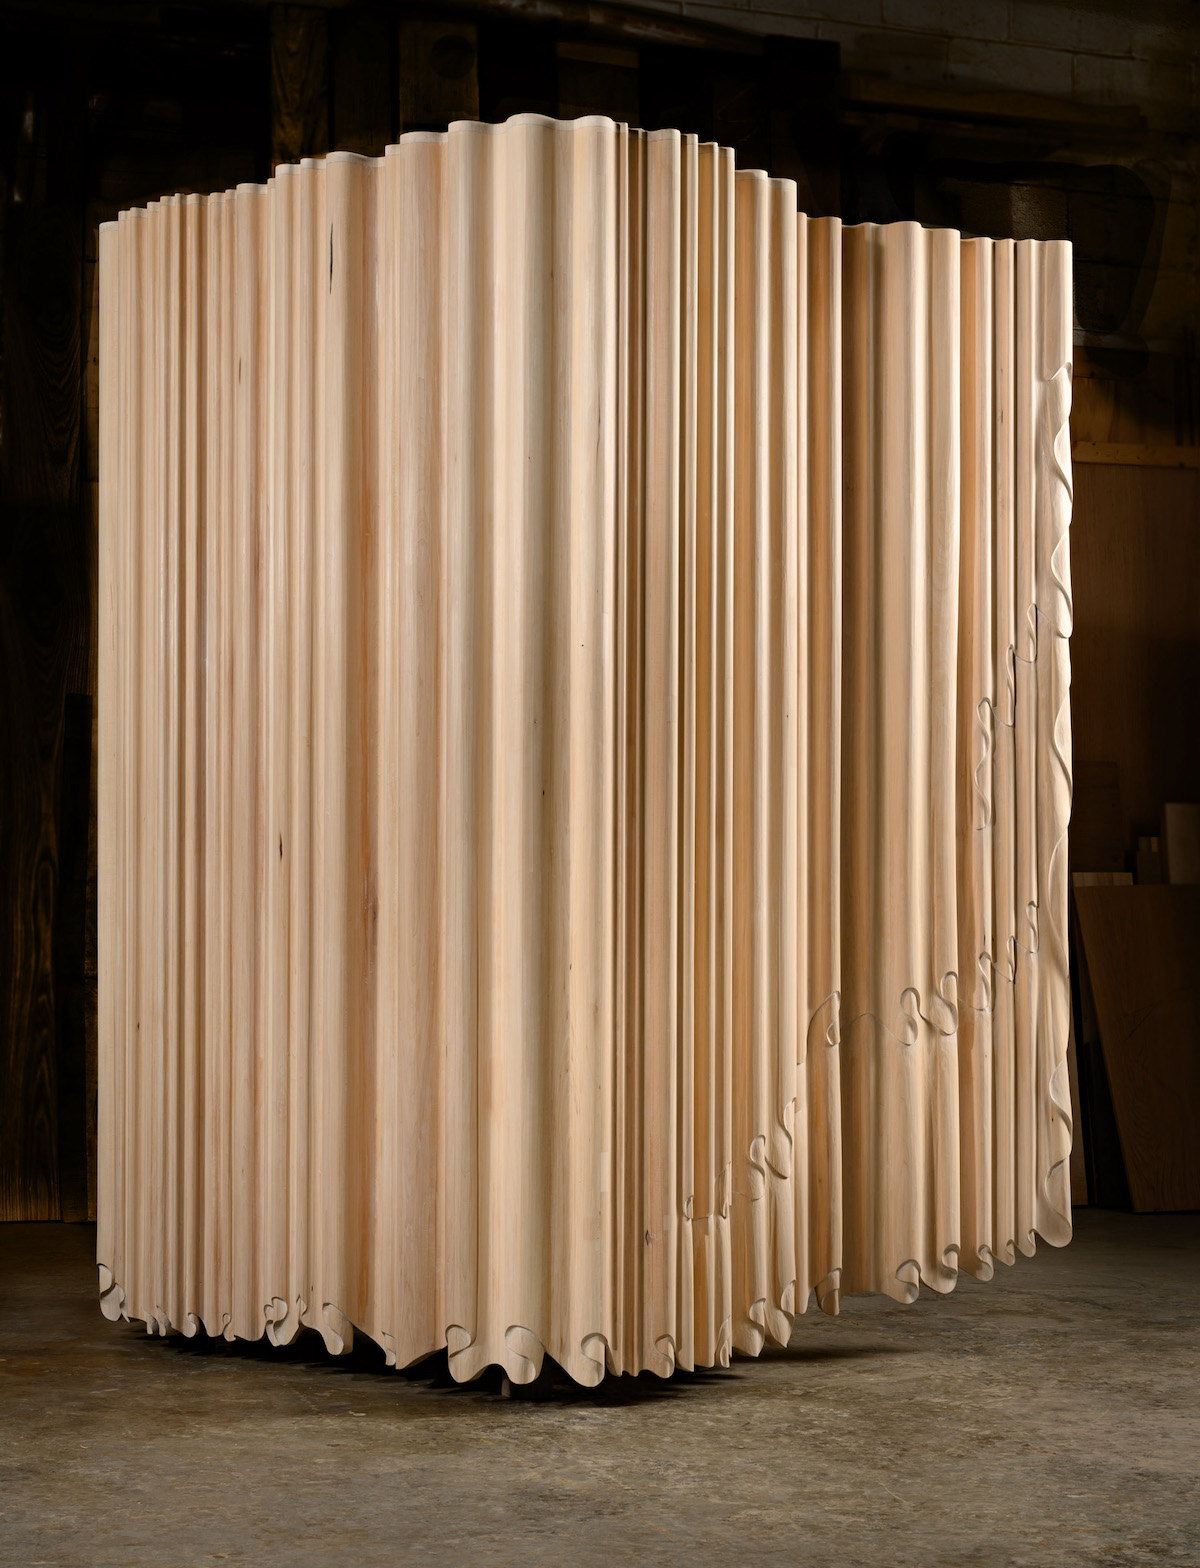 back view of Linenfold Armoire (Perpendicular Style) by artist Christopher Kurtz